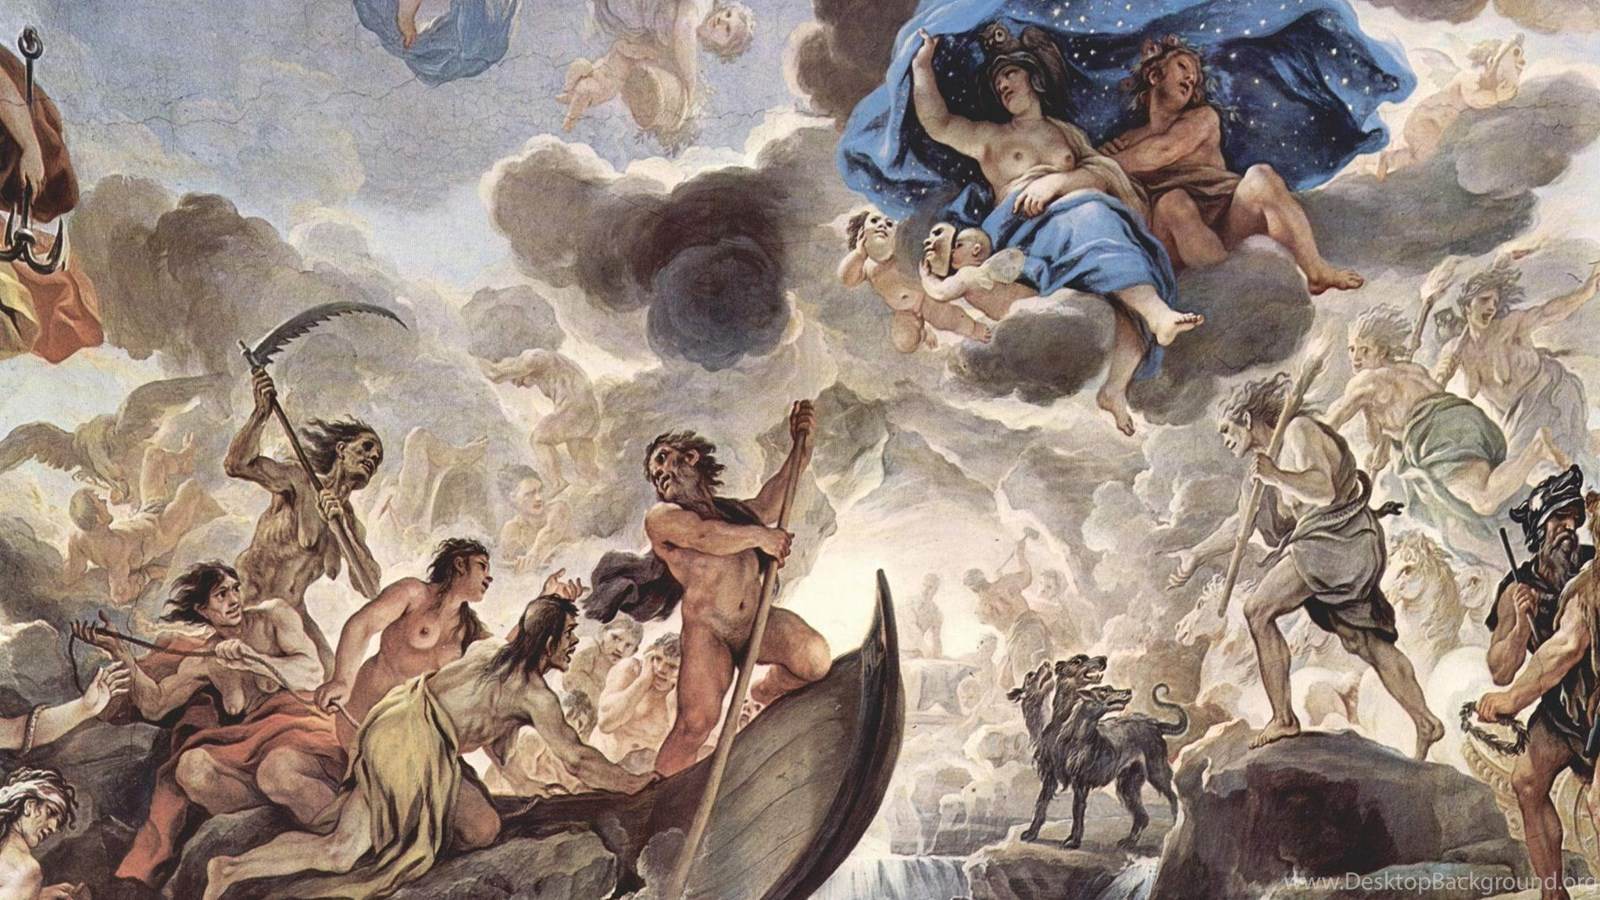 an analysis of the heroes in greek mythology Greek mythology is the body of myths originally told by the ancient greeks these stories concern the origin and the nature of the world, the lives and activities of deities, heroes.